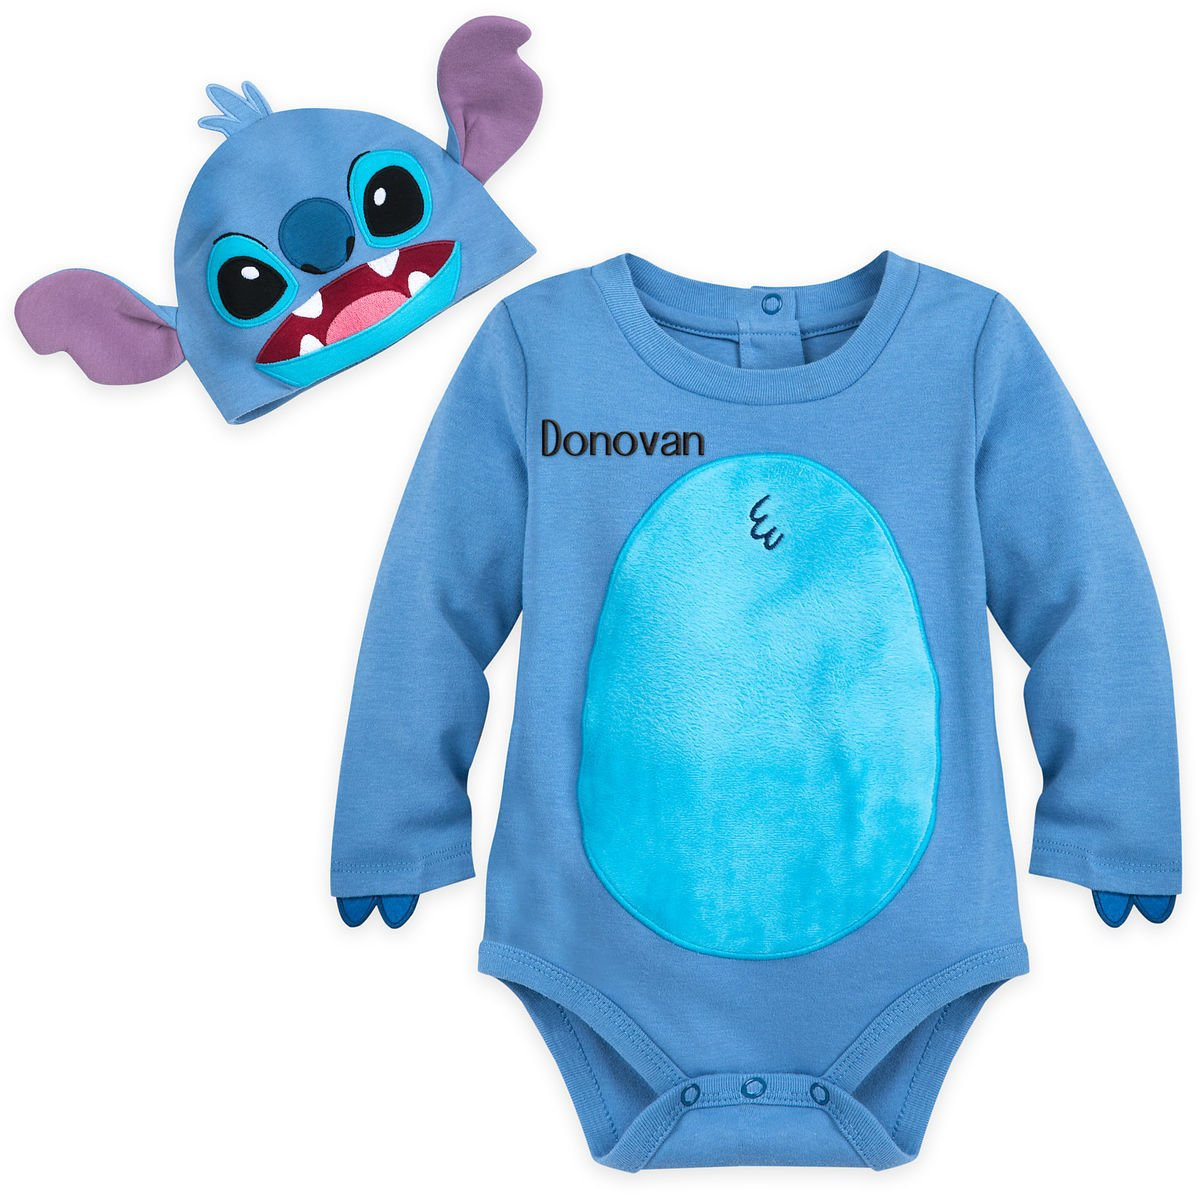 Disney Store Stitch Baby Costume Bodysuit Hat Lilo and Stitch 0-3 Months 2018 New